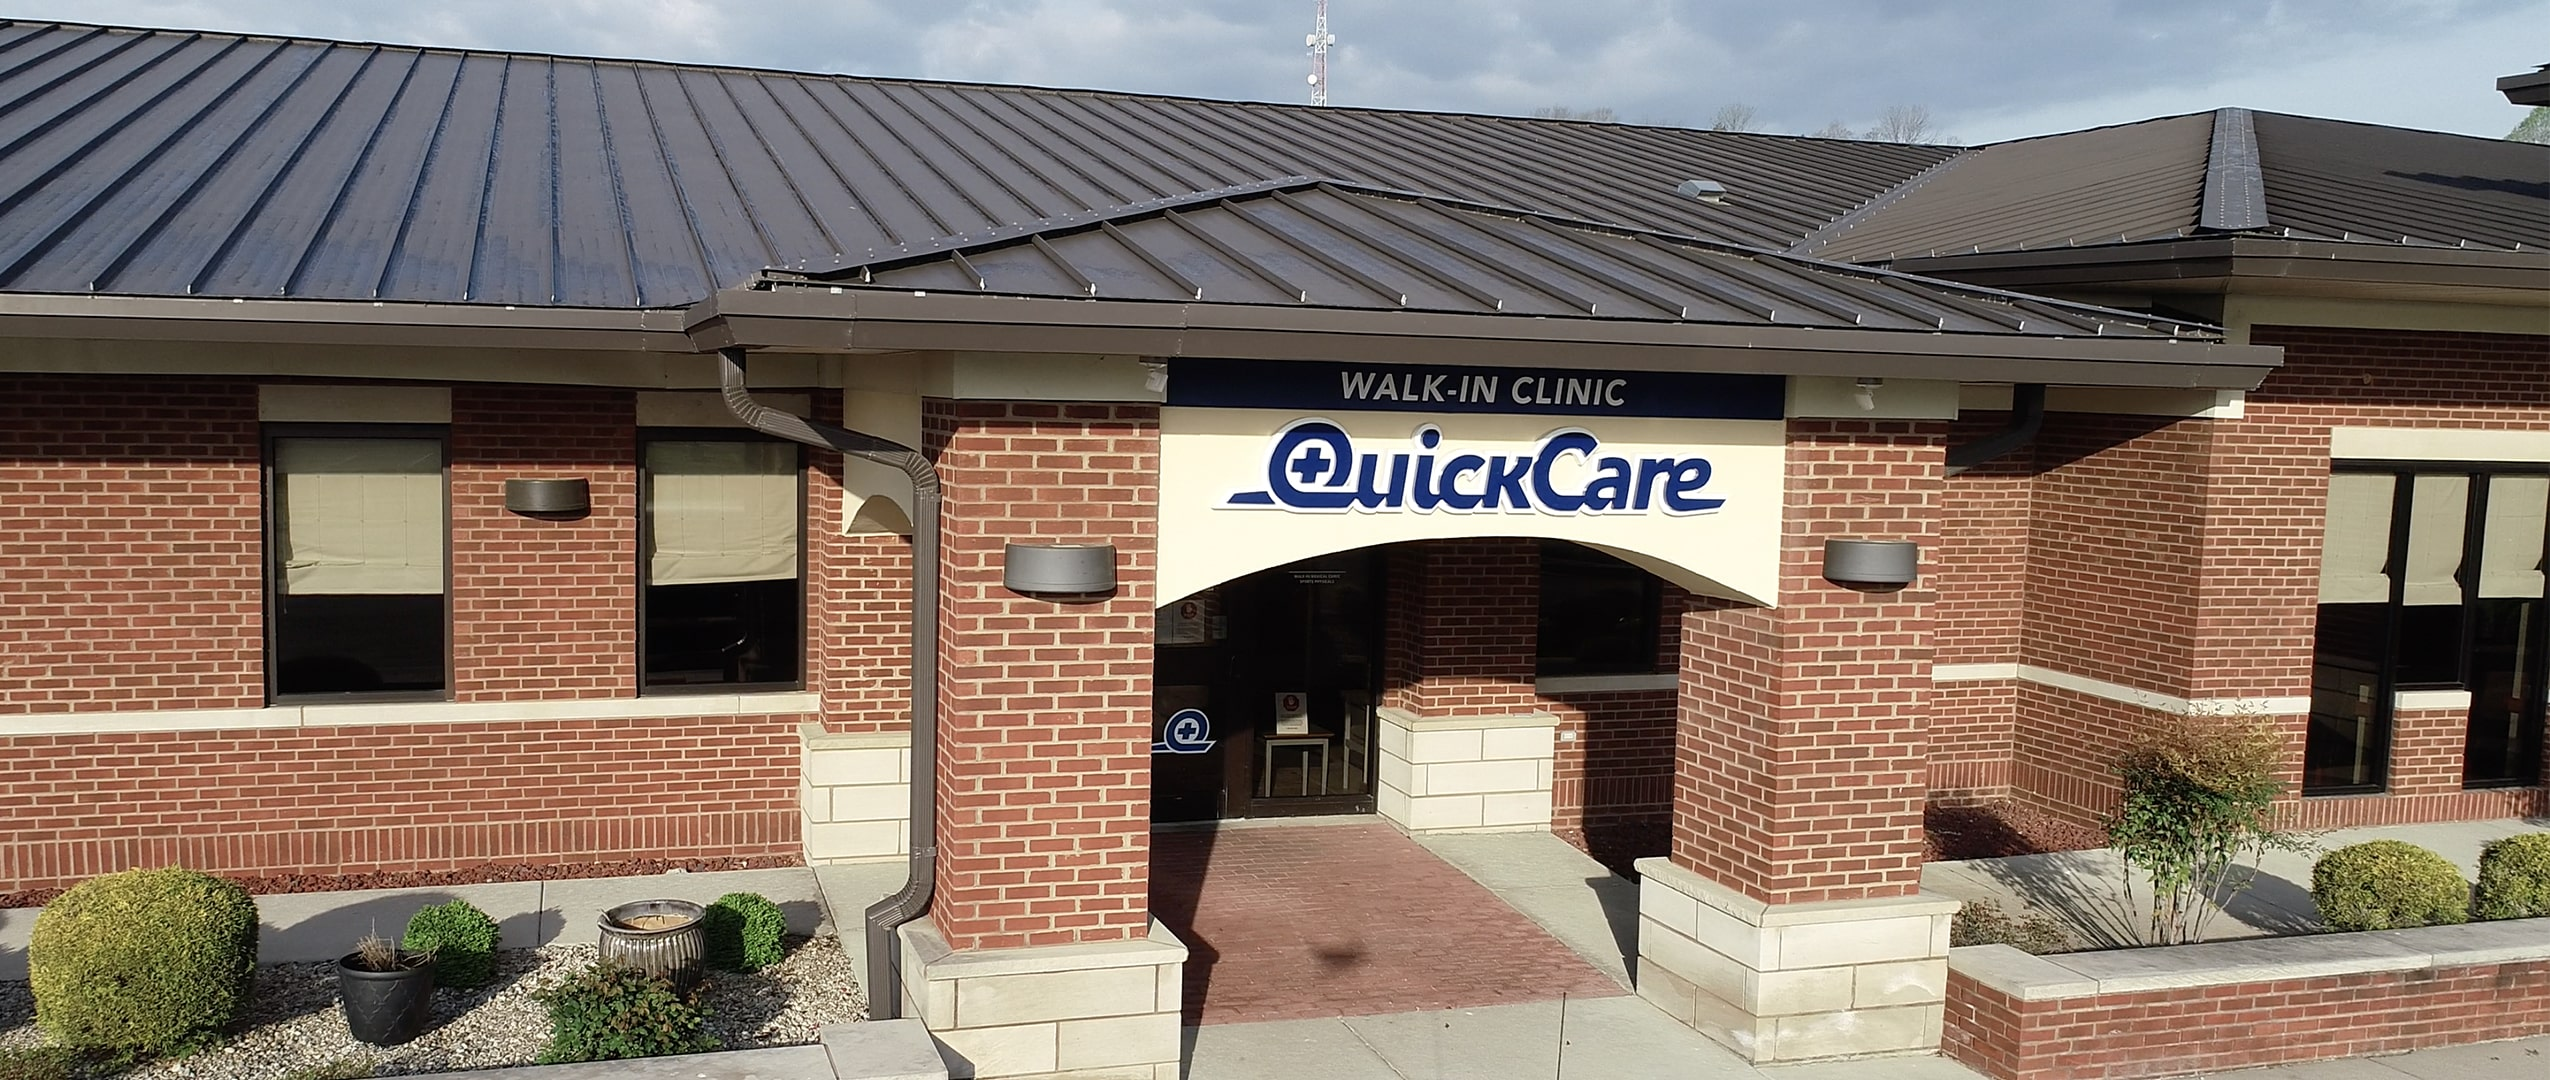 QuickCare At MedPark West Somerset Kentucky